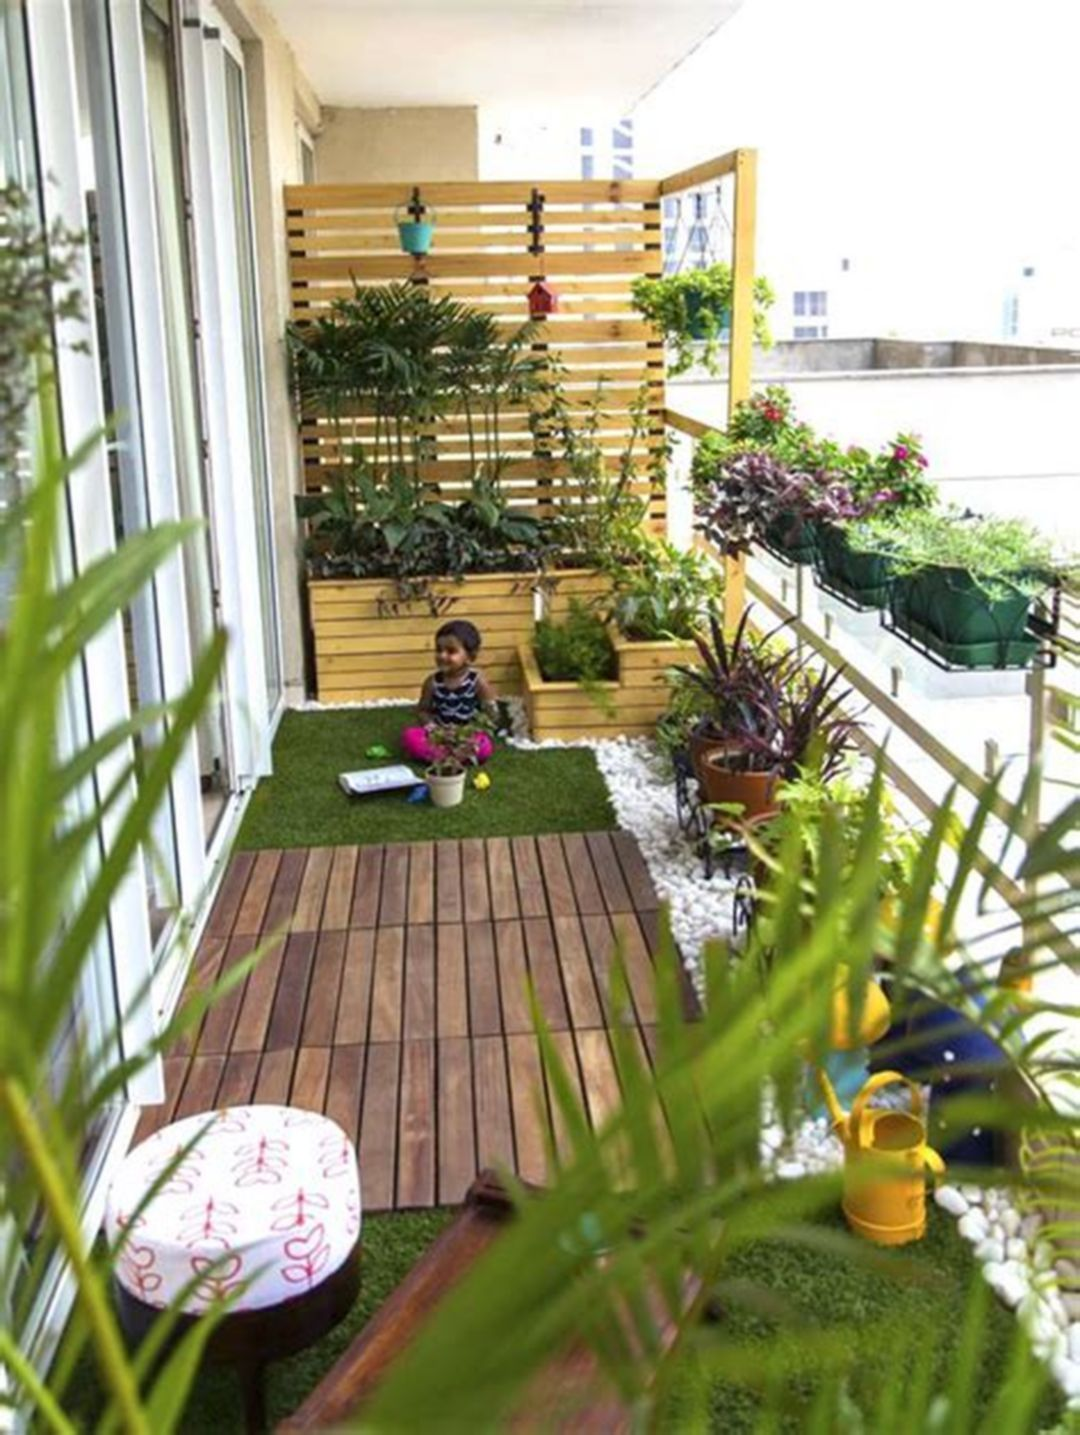 Small Condo Patio Design Ideas 04 Apartment Balcony Garden Small Balcony Design Small Balcony Garden